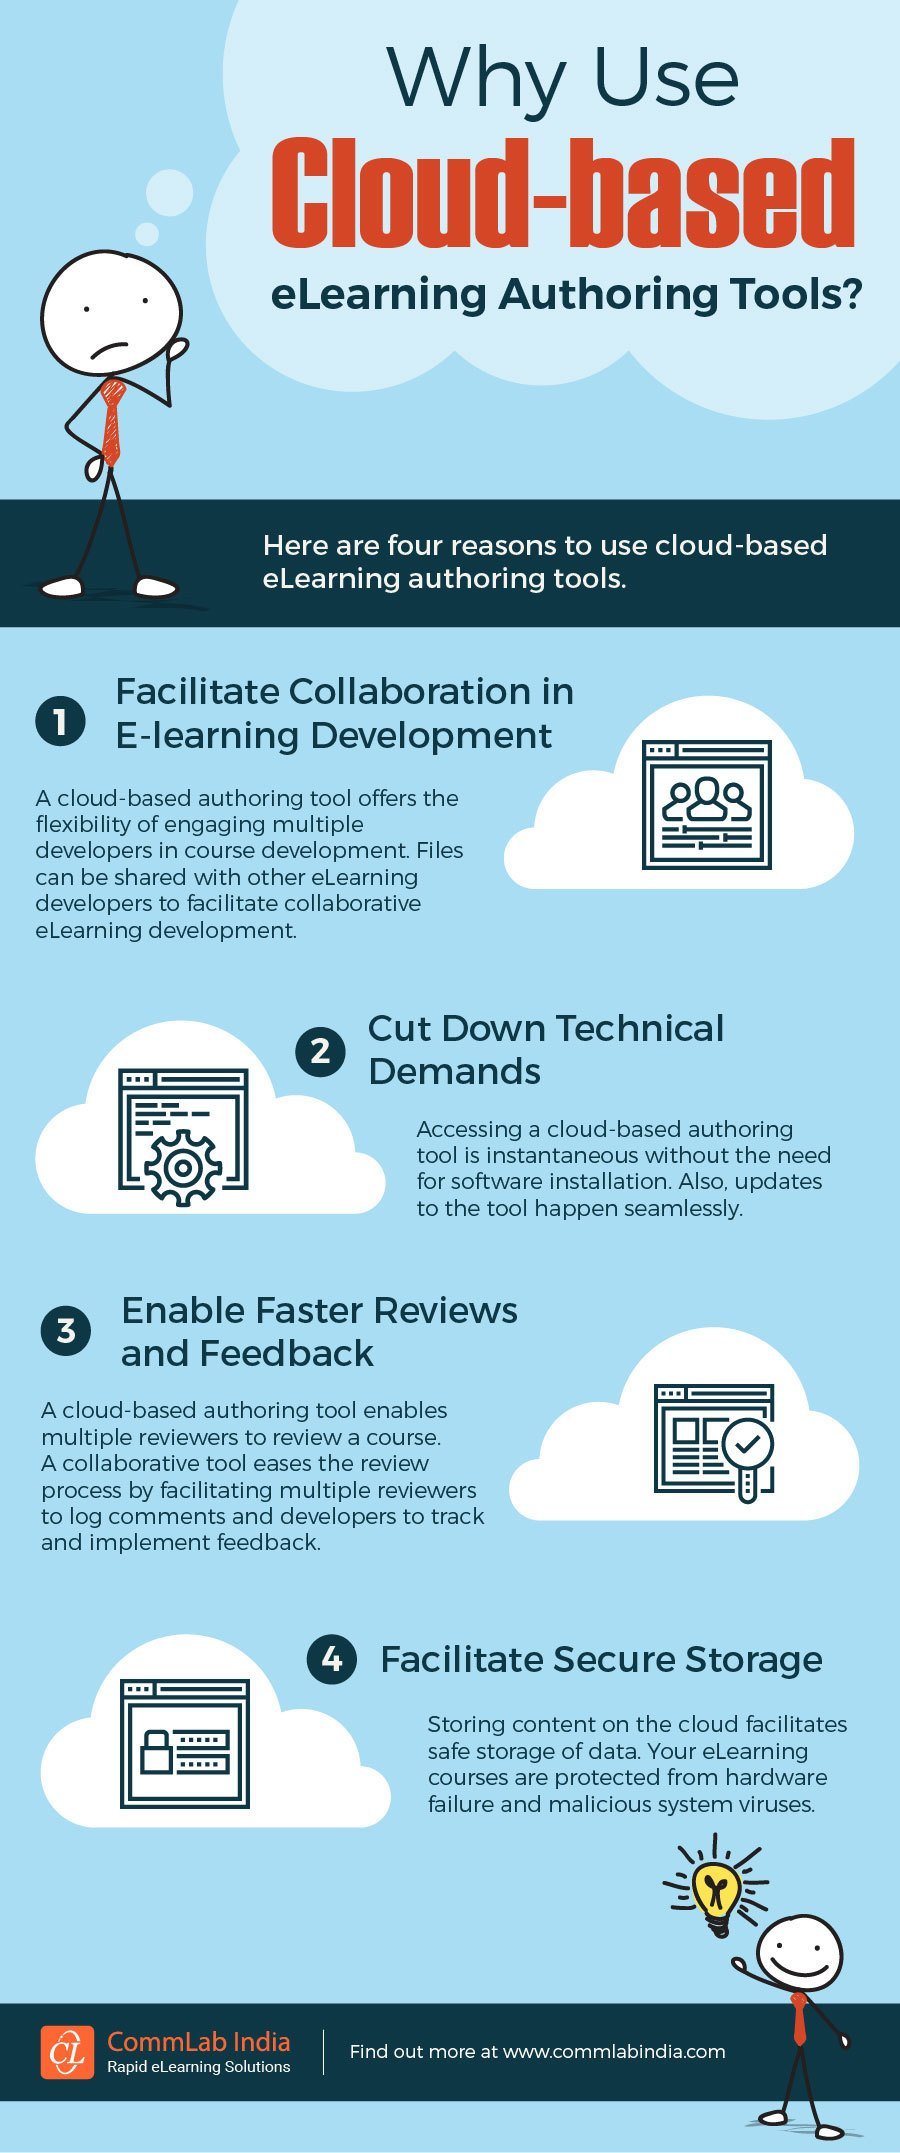 Why Use Cloud-Based eLearning Authoring Tools?